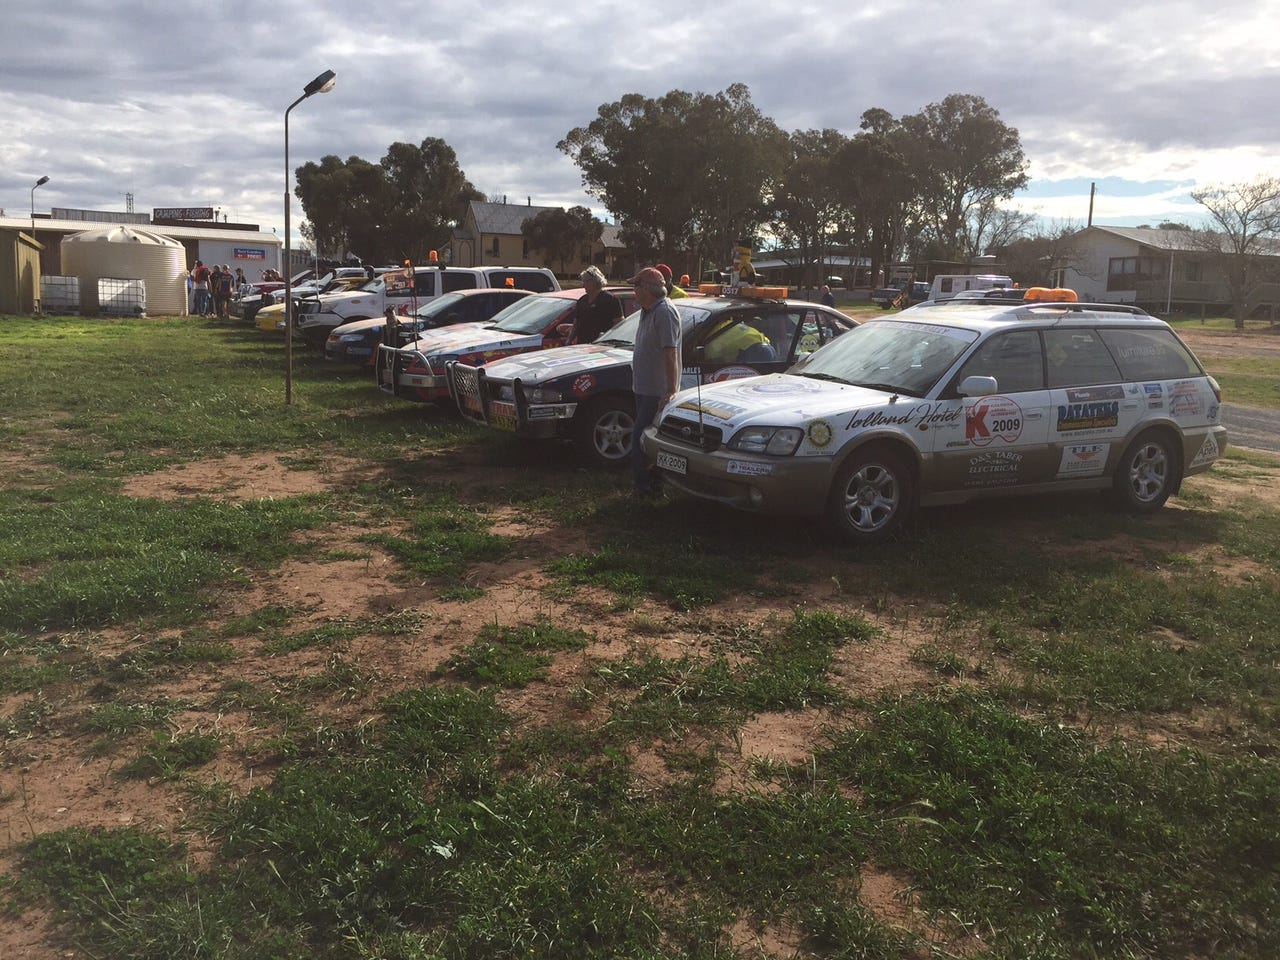 Some of the Kars in Ouyen